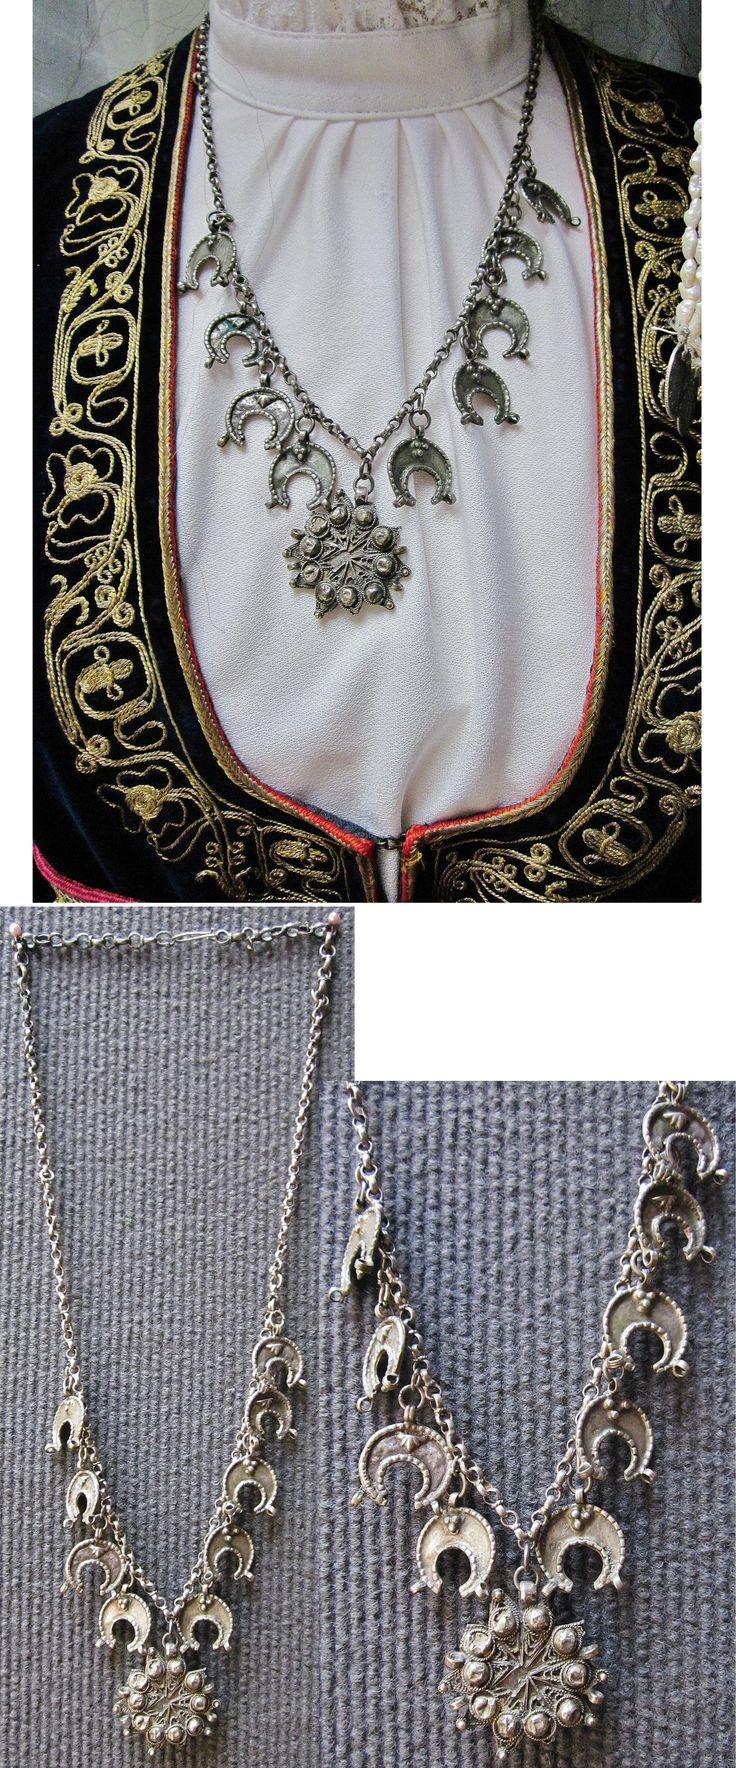 Silver necklace from Central Anatolia.  Made in an Armenian workshop in Sivas, late-Ottoman, c. early 20th century.  (Inv.nr. müç015 - Kavak Costume Collection - Antwerpen/Belgium).